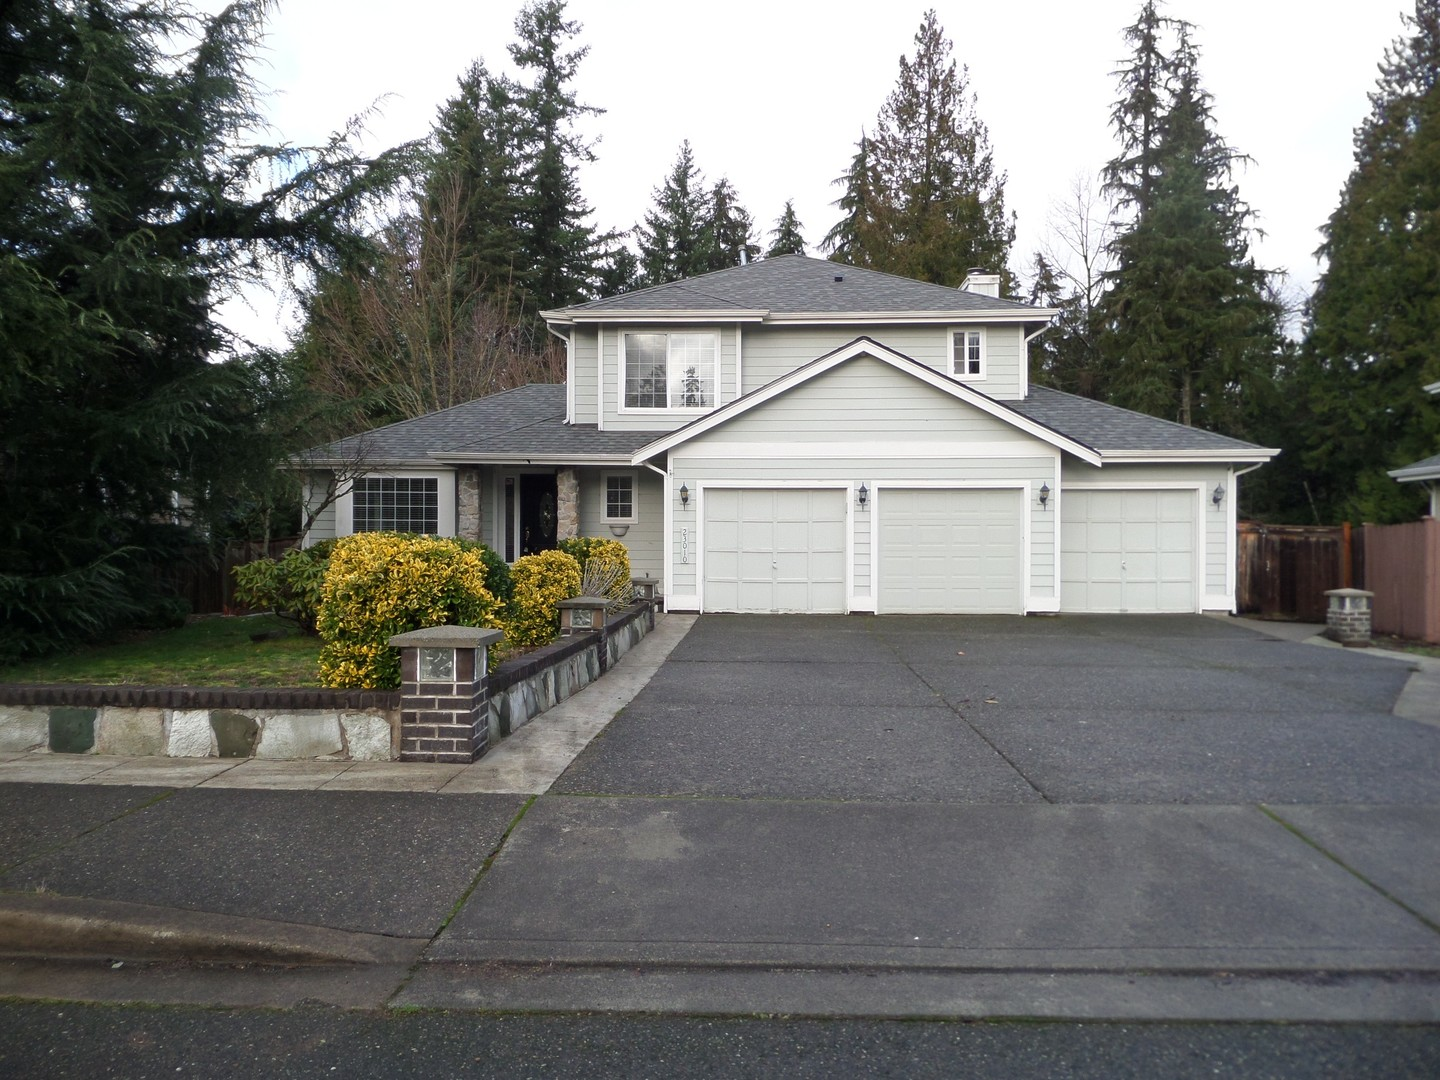 House for Rent in Maple Valley